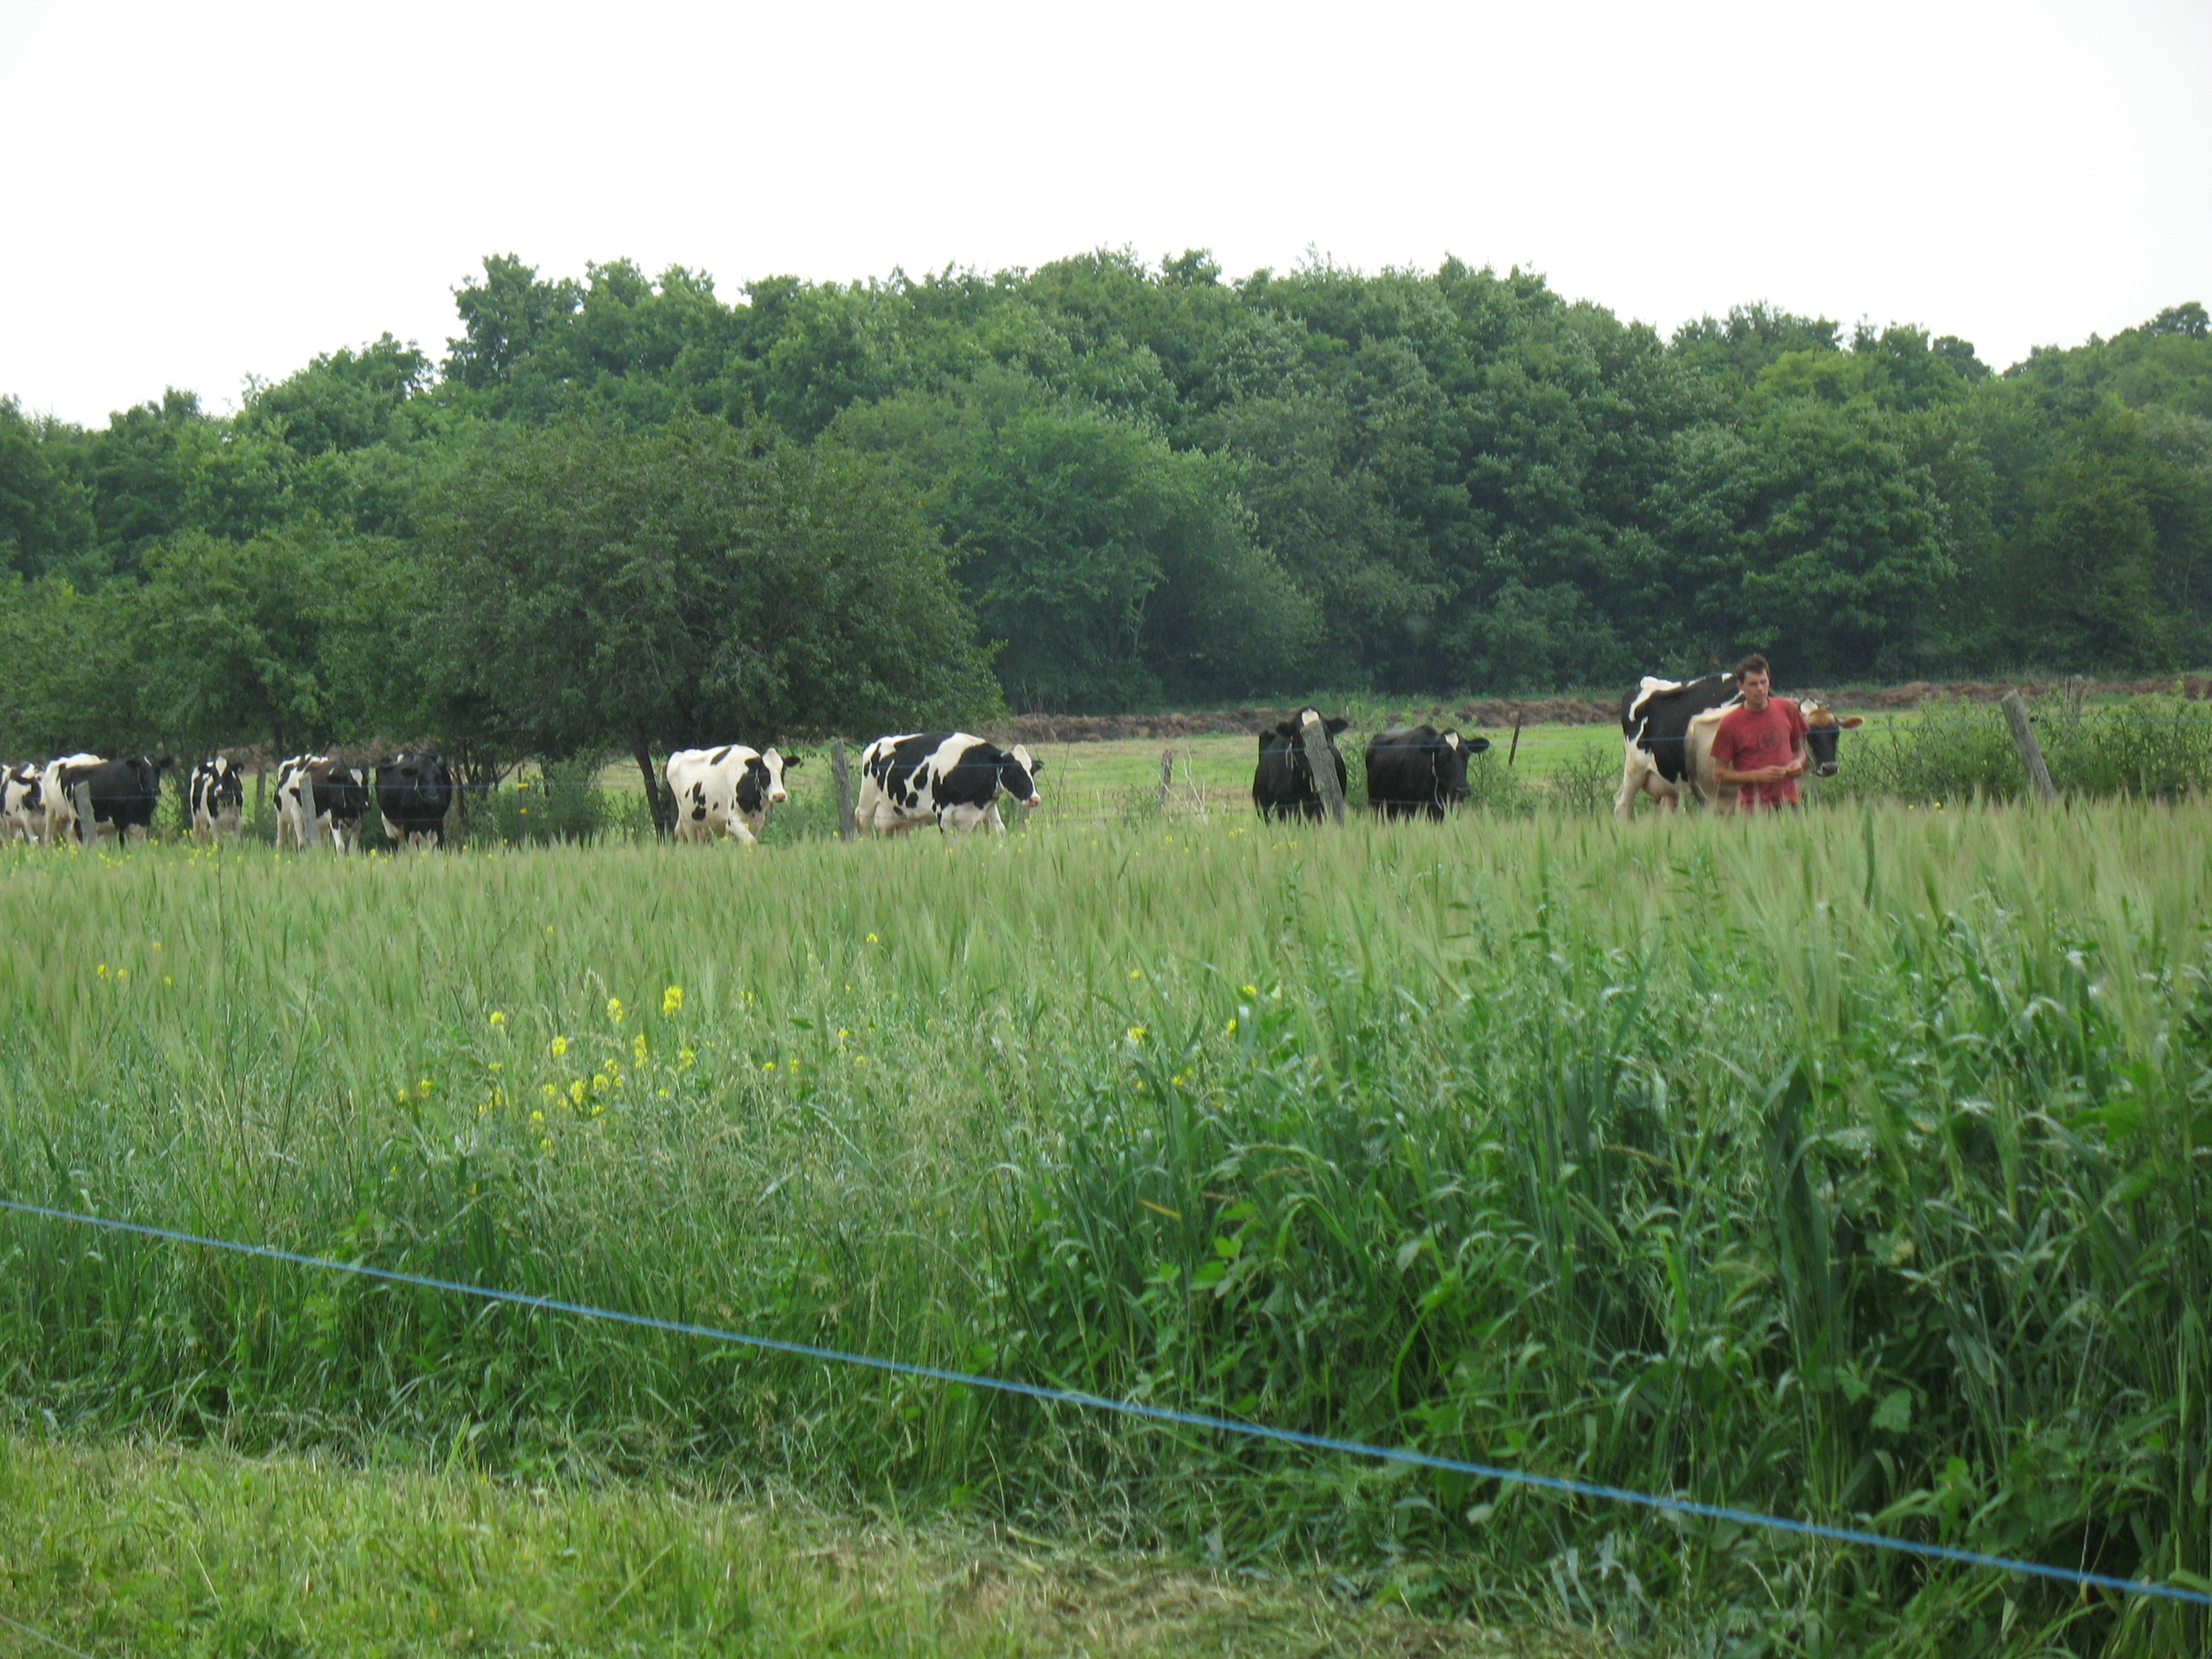 Cows coming up from pasture for milking with Charlie